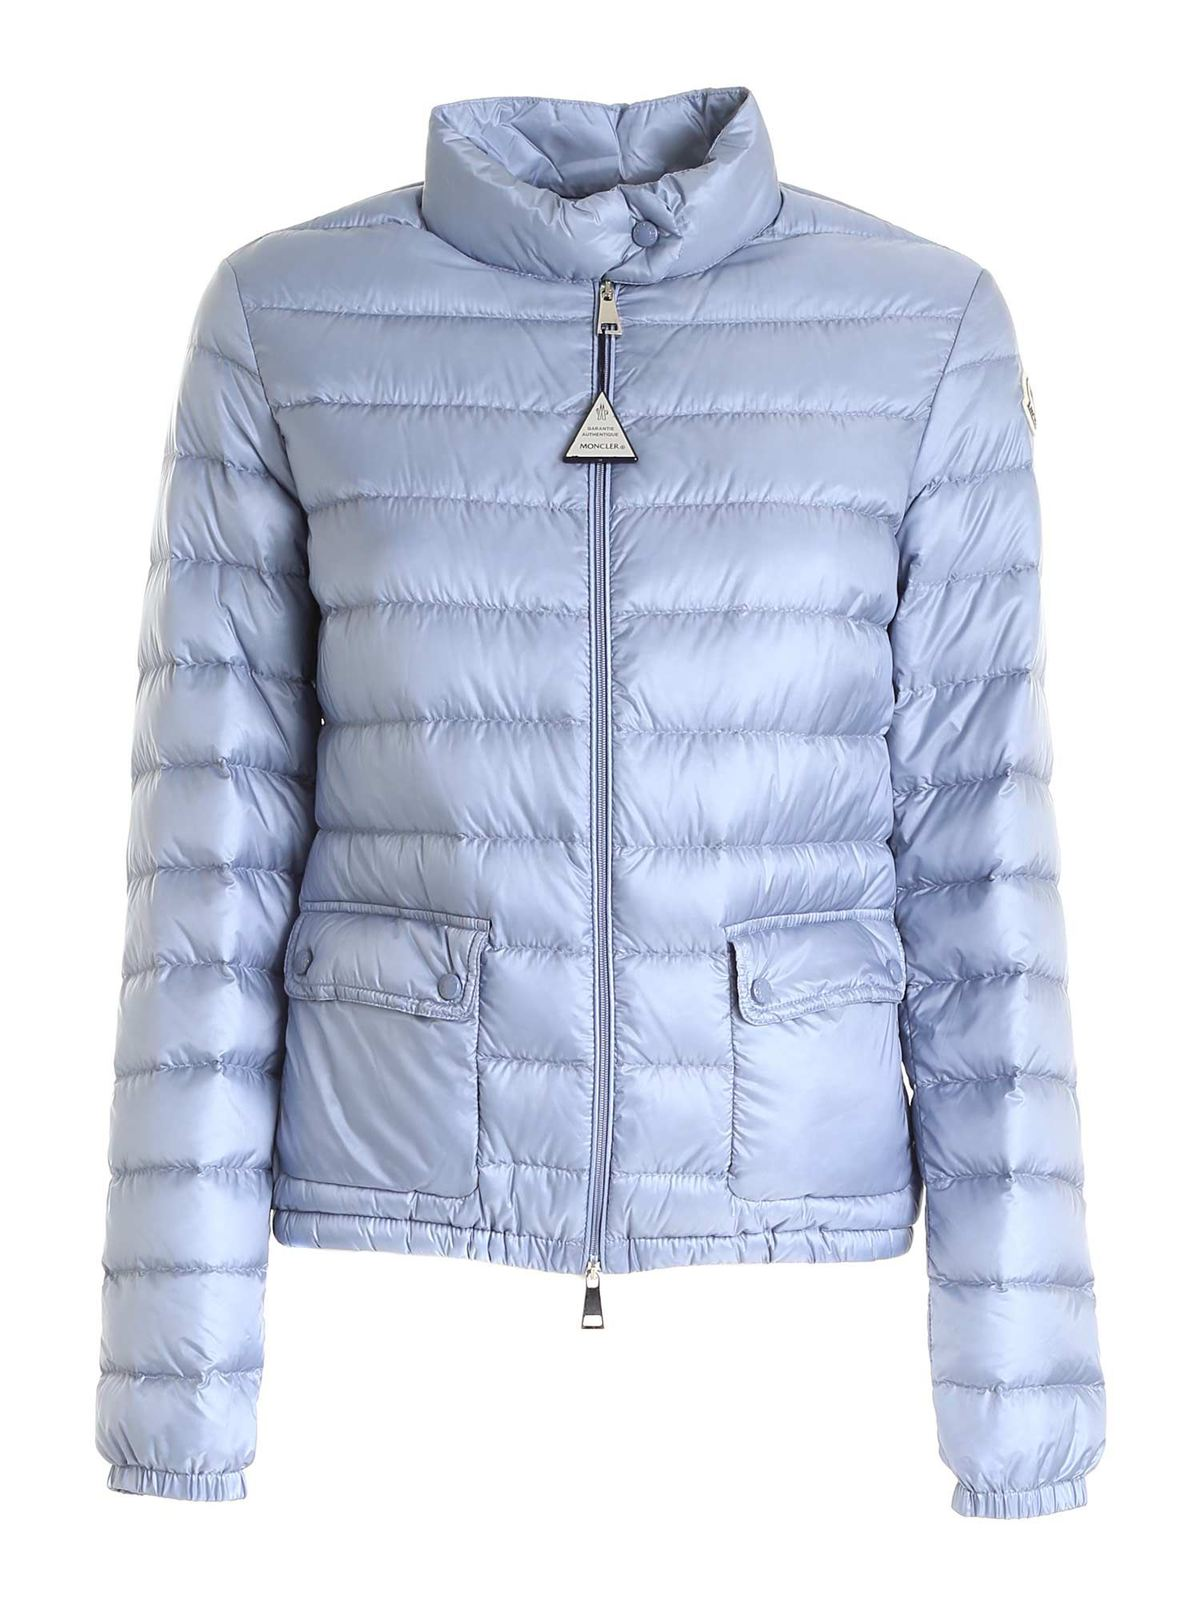 Moncler LANS DOWN JACKET IN LIGHT BLUE